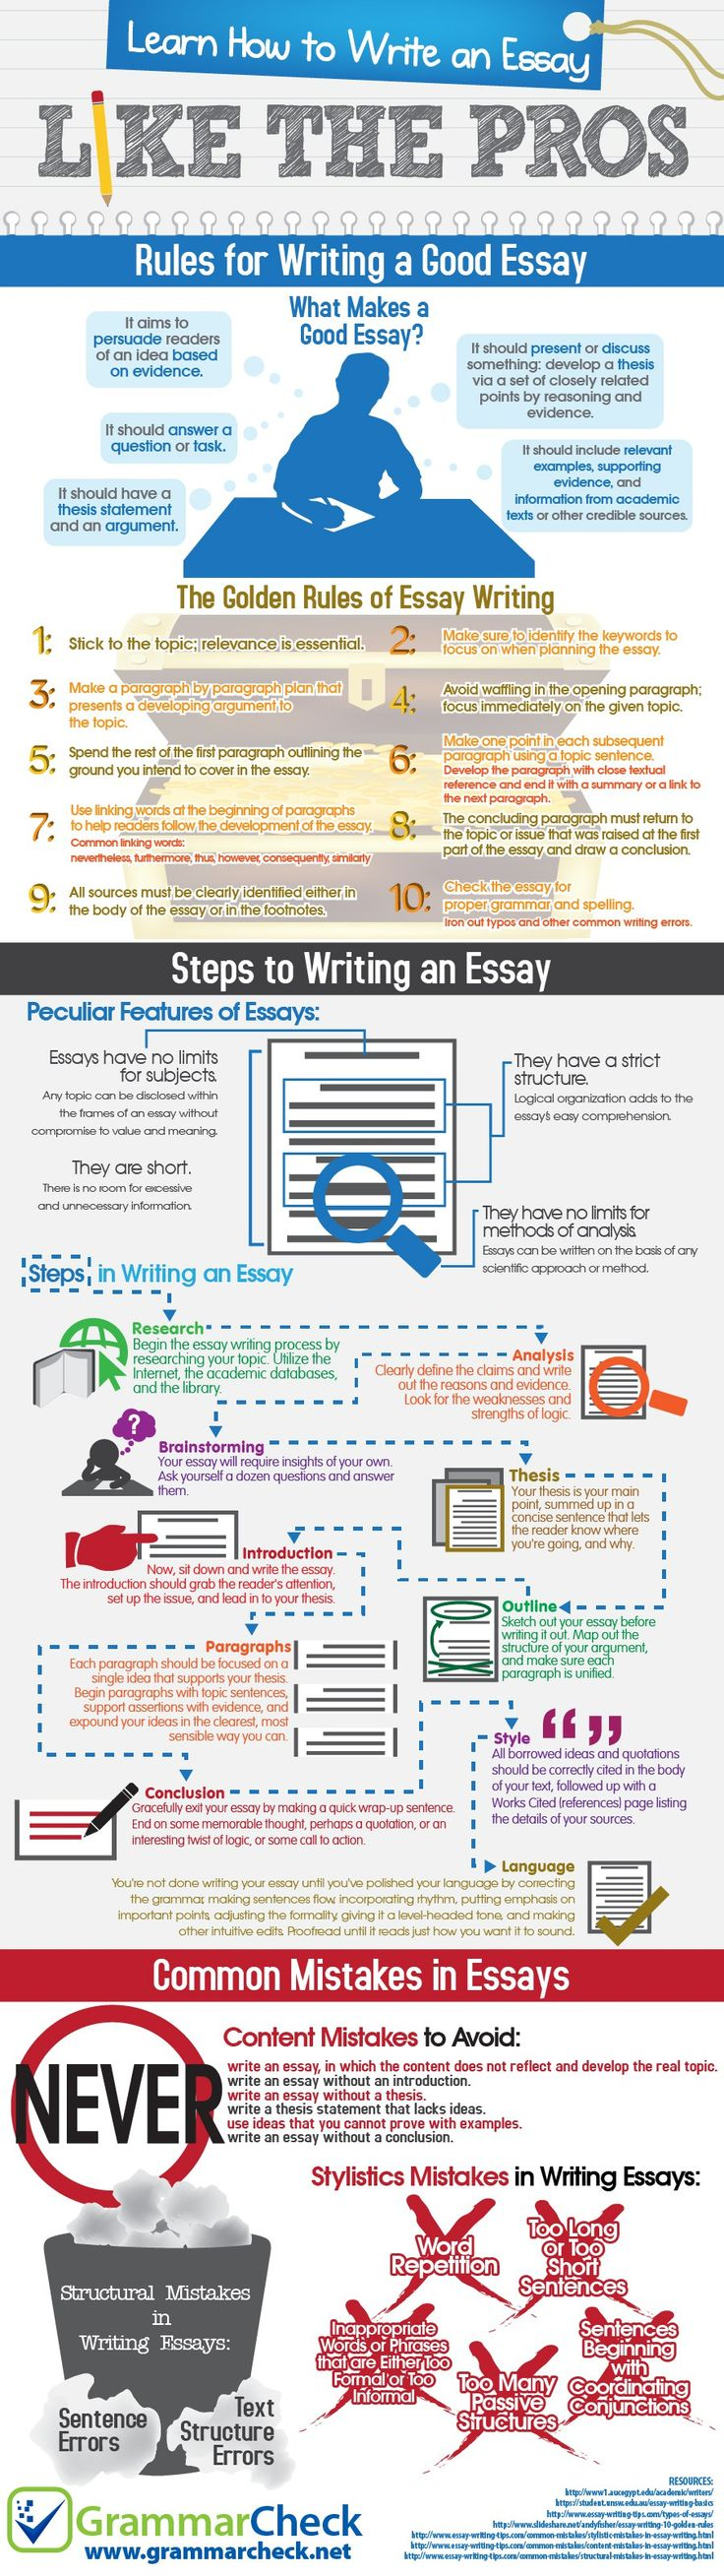 Writing services for college papers elsevier